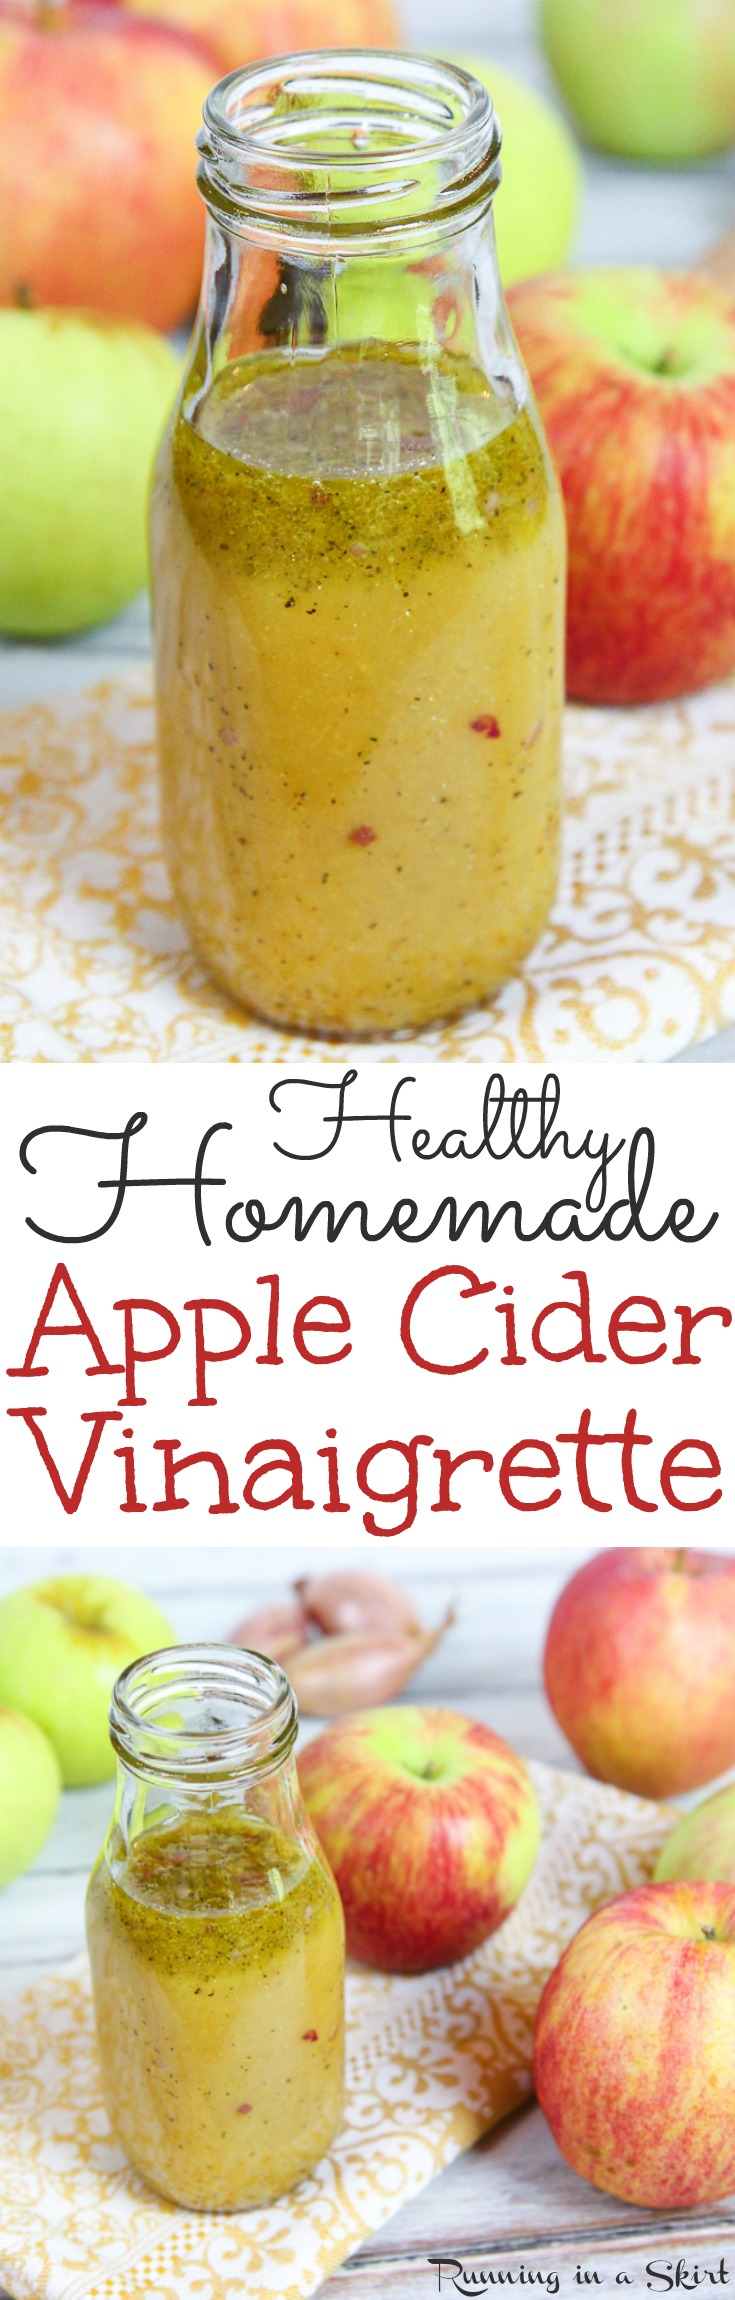 Healthy Apple Cider Vinaigrette Dressing recipe. The perfect homemade salad dressing for fall, winter, Thanksgiving or Christmas. Uses apple cider and apple cider vinegar for a sweet taste! Also has maple syrup, mustard and olive oils. So tasty! / Running in a Skirt @juliewunder via @juliewunder